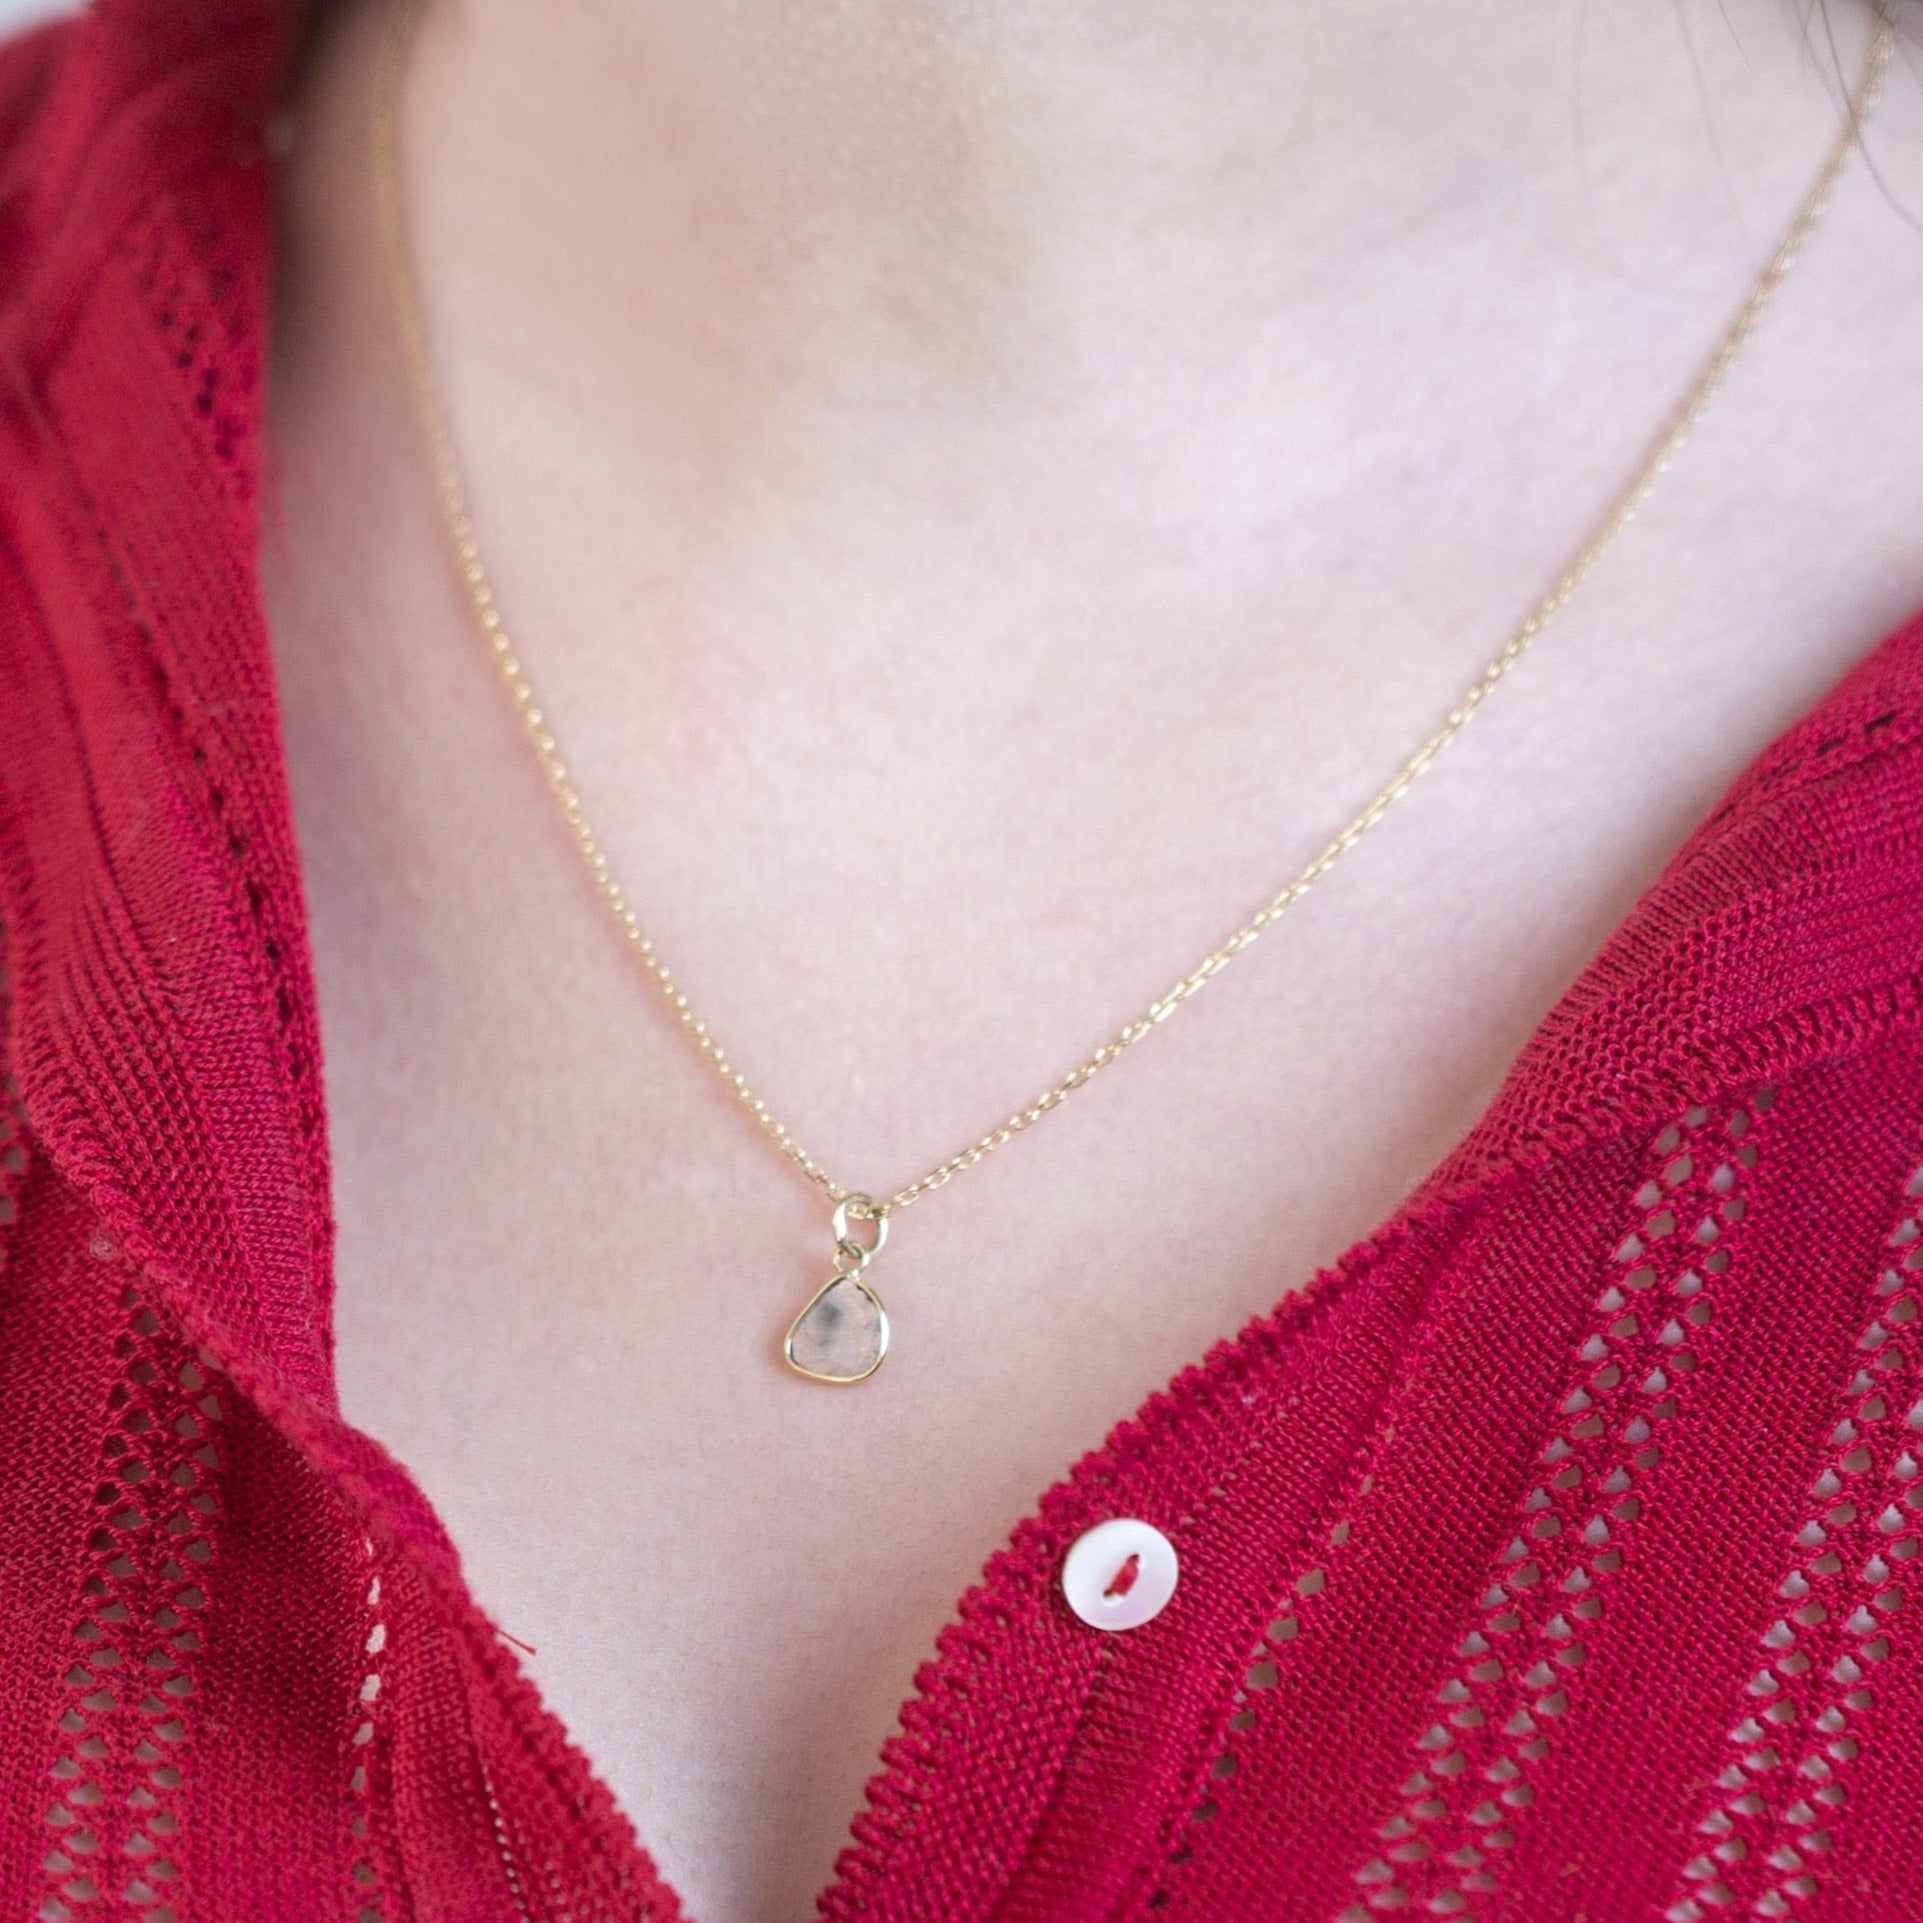 Diamond Slice Pendant Necklace